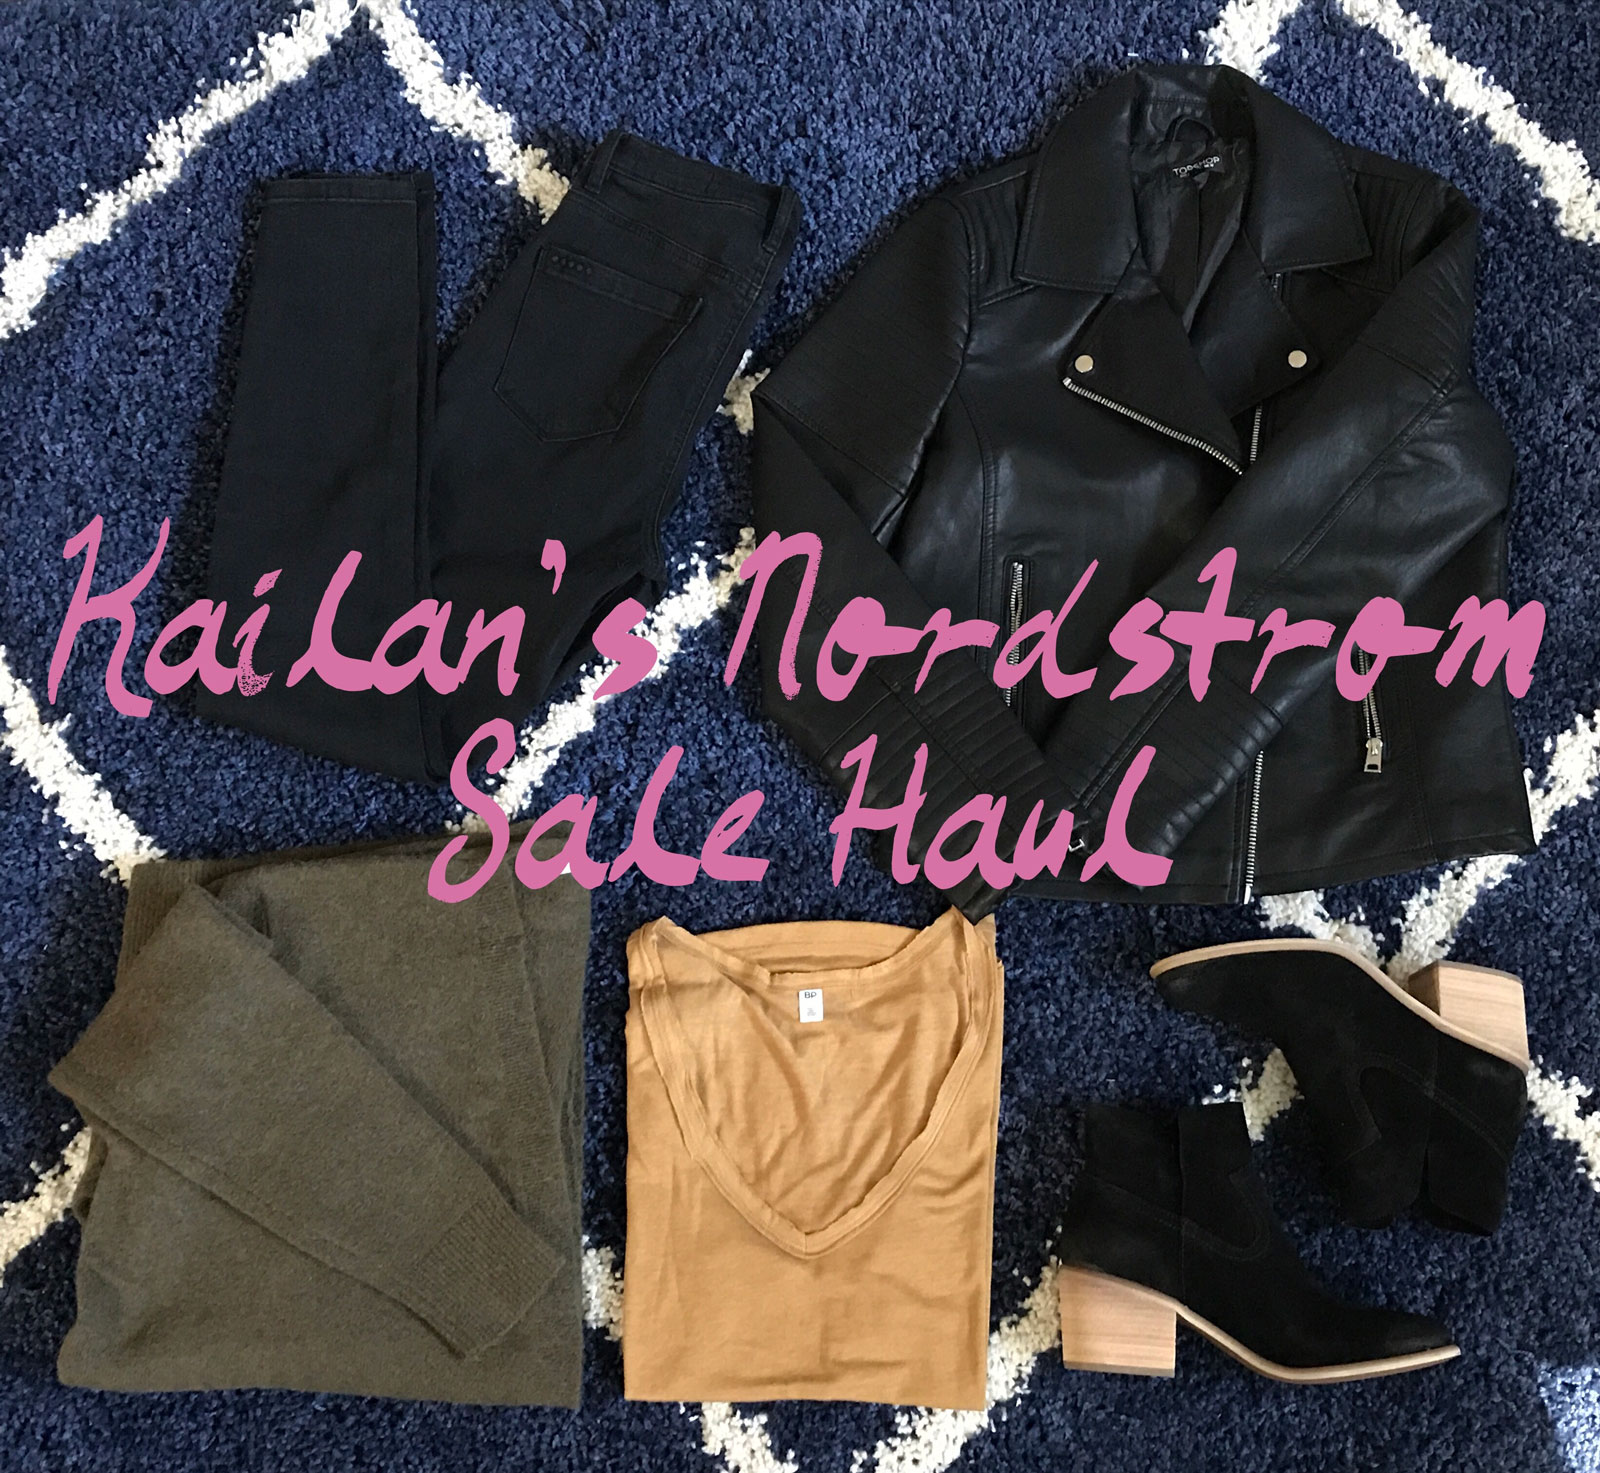 Kailan's 2018 Nordstrom Sale Haul Try-On